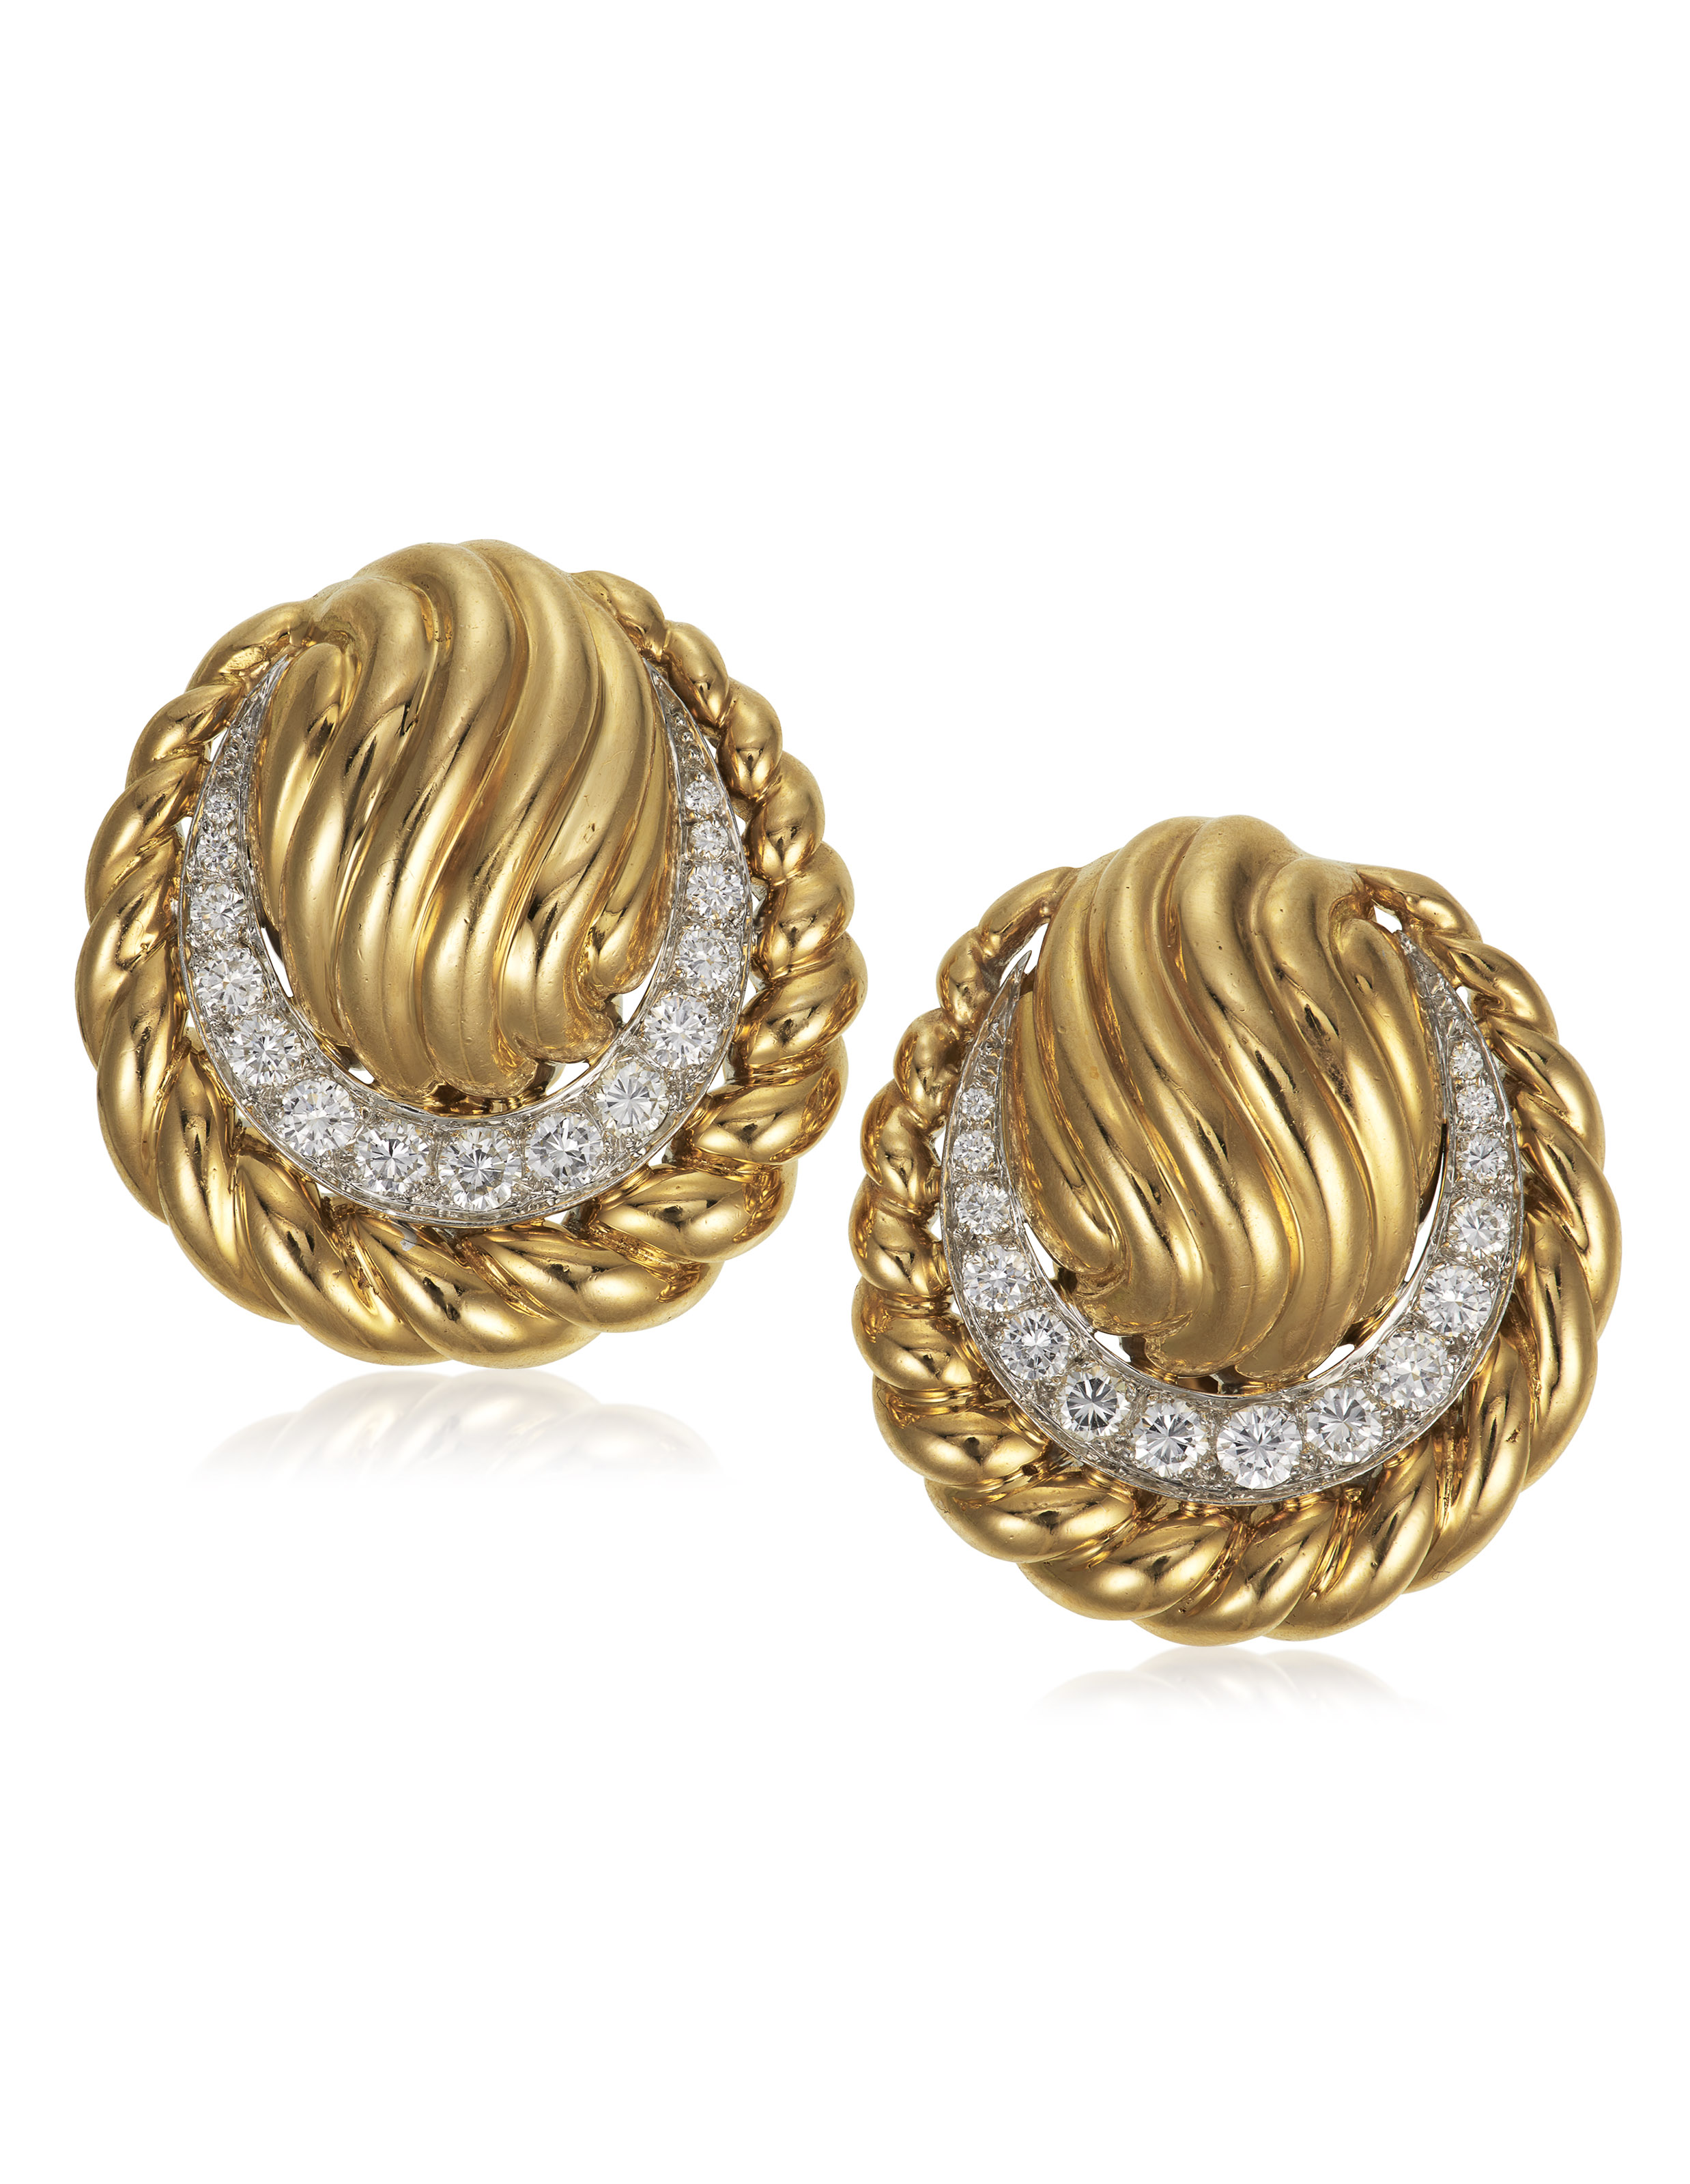 Gold and diamond earrings, by David Webb. Estimate $2,000-3,000. Offered in Jewels Online, until 10 February 2021, Online